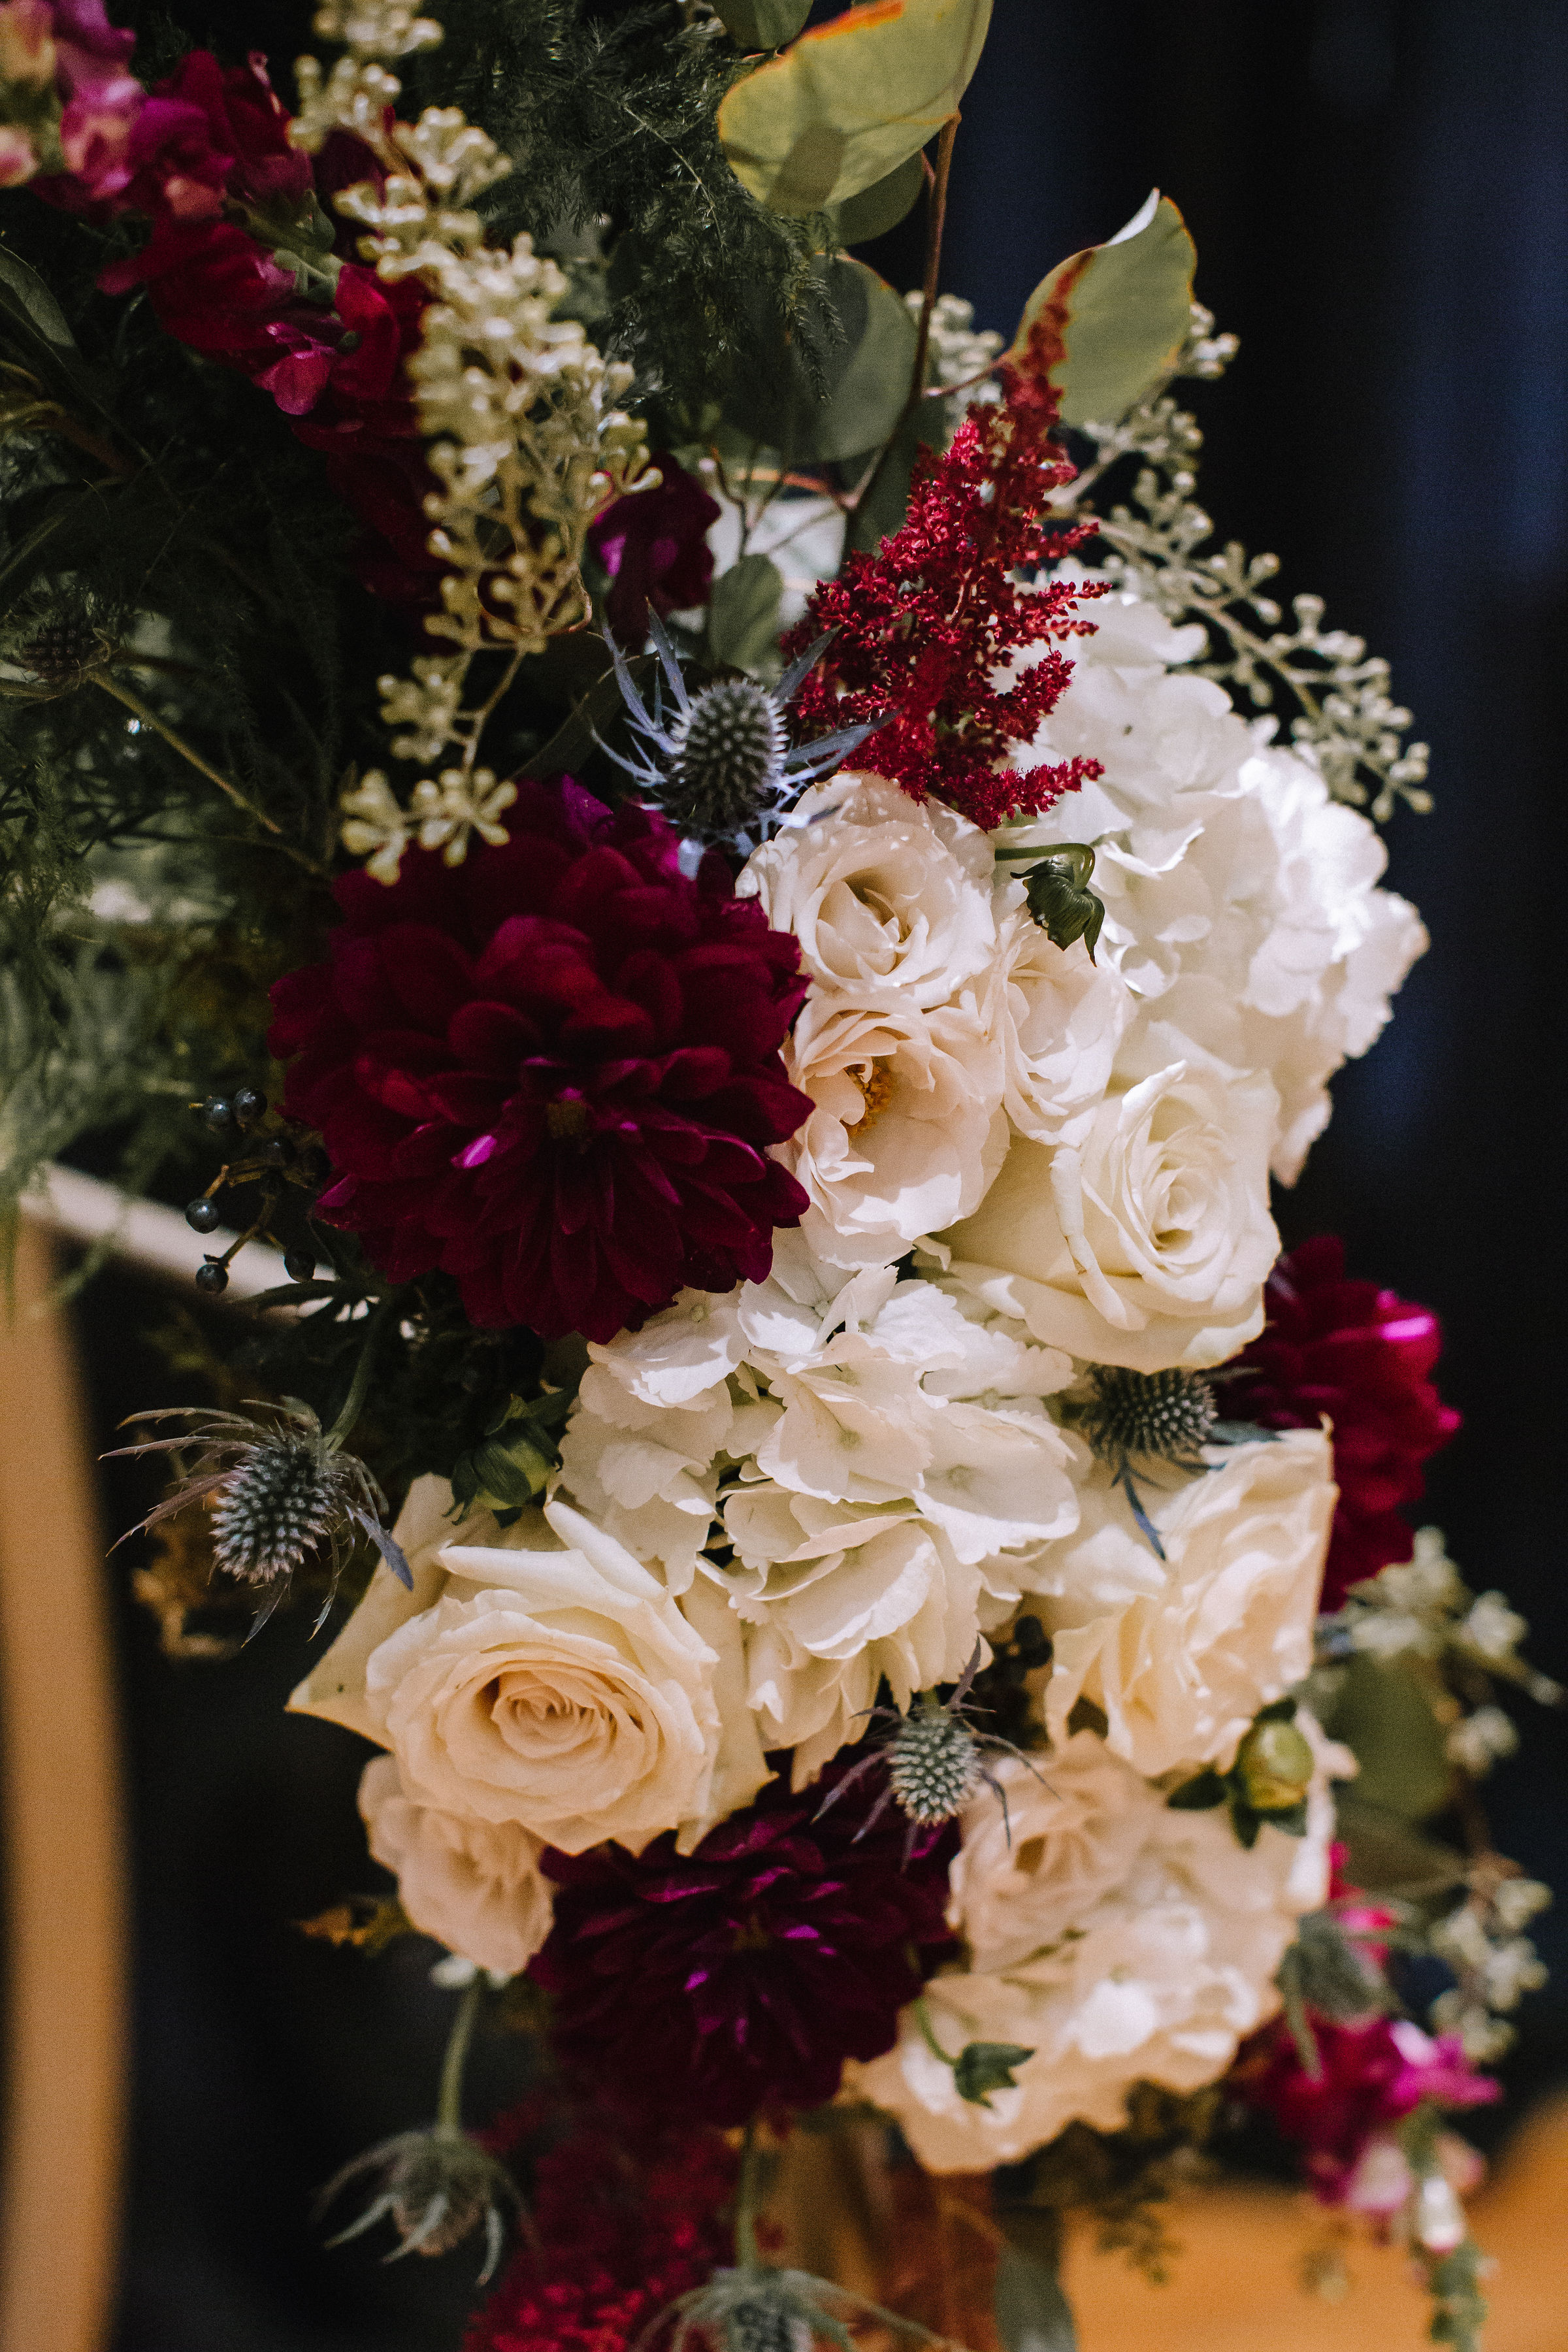 Wedding floral accents for Pittsburgh wedding at Studio Slate planned by Exhale Events. Find more wedding inspiration at exhale-events.com!